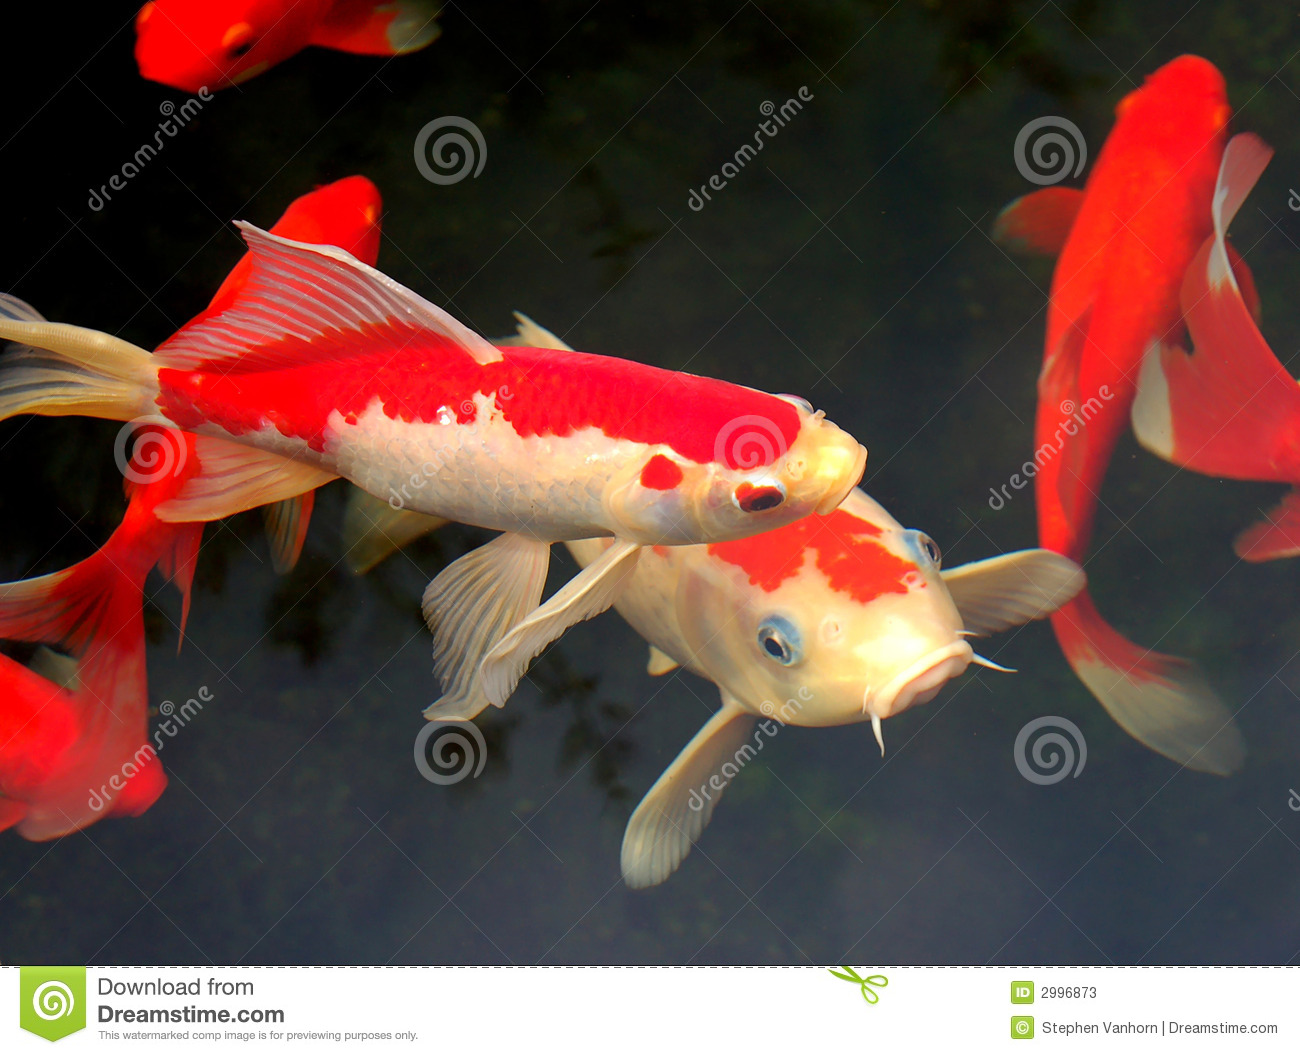 Koi and goldfish stock photos image 2996873 for Koi und goldfisch